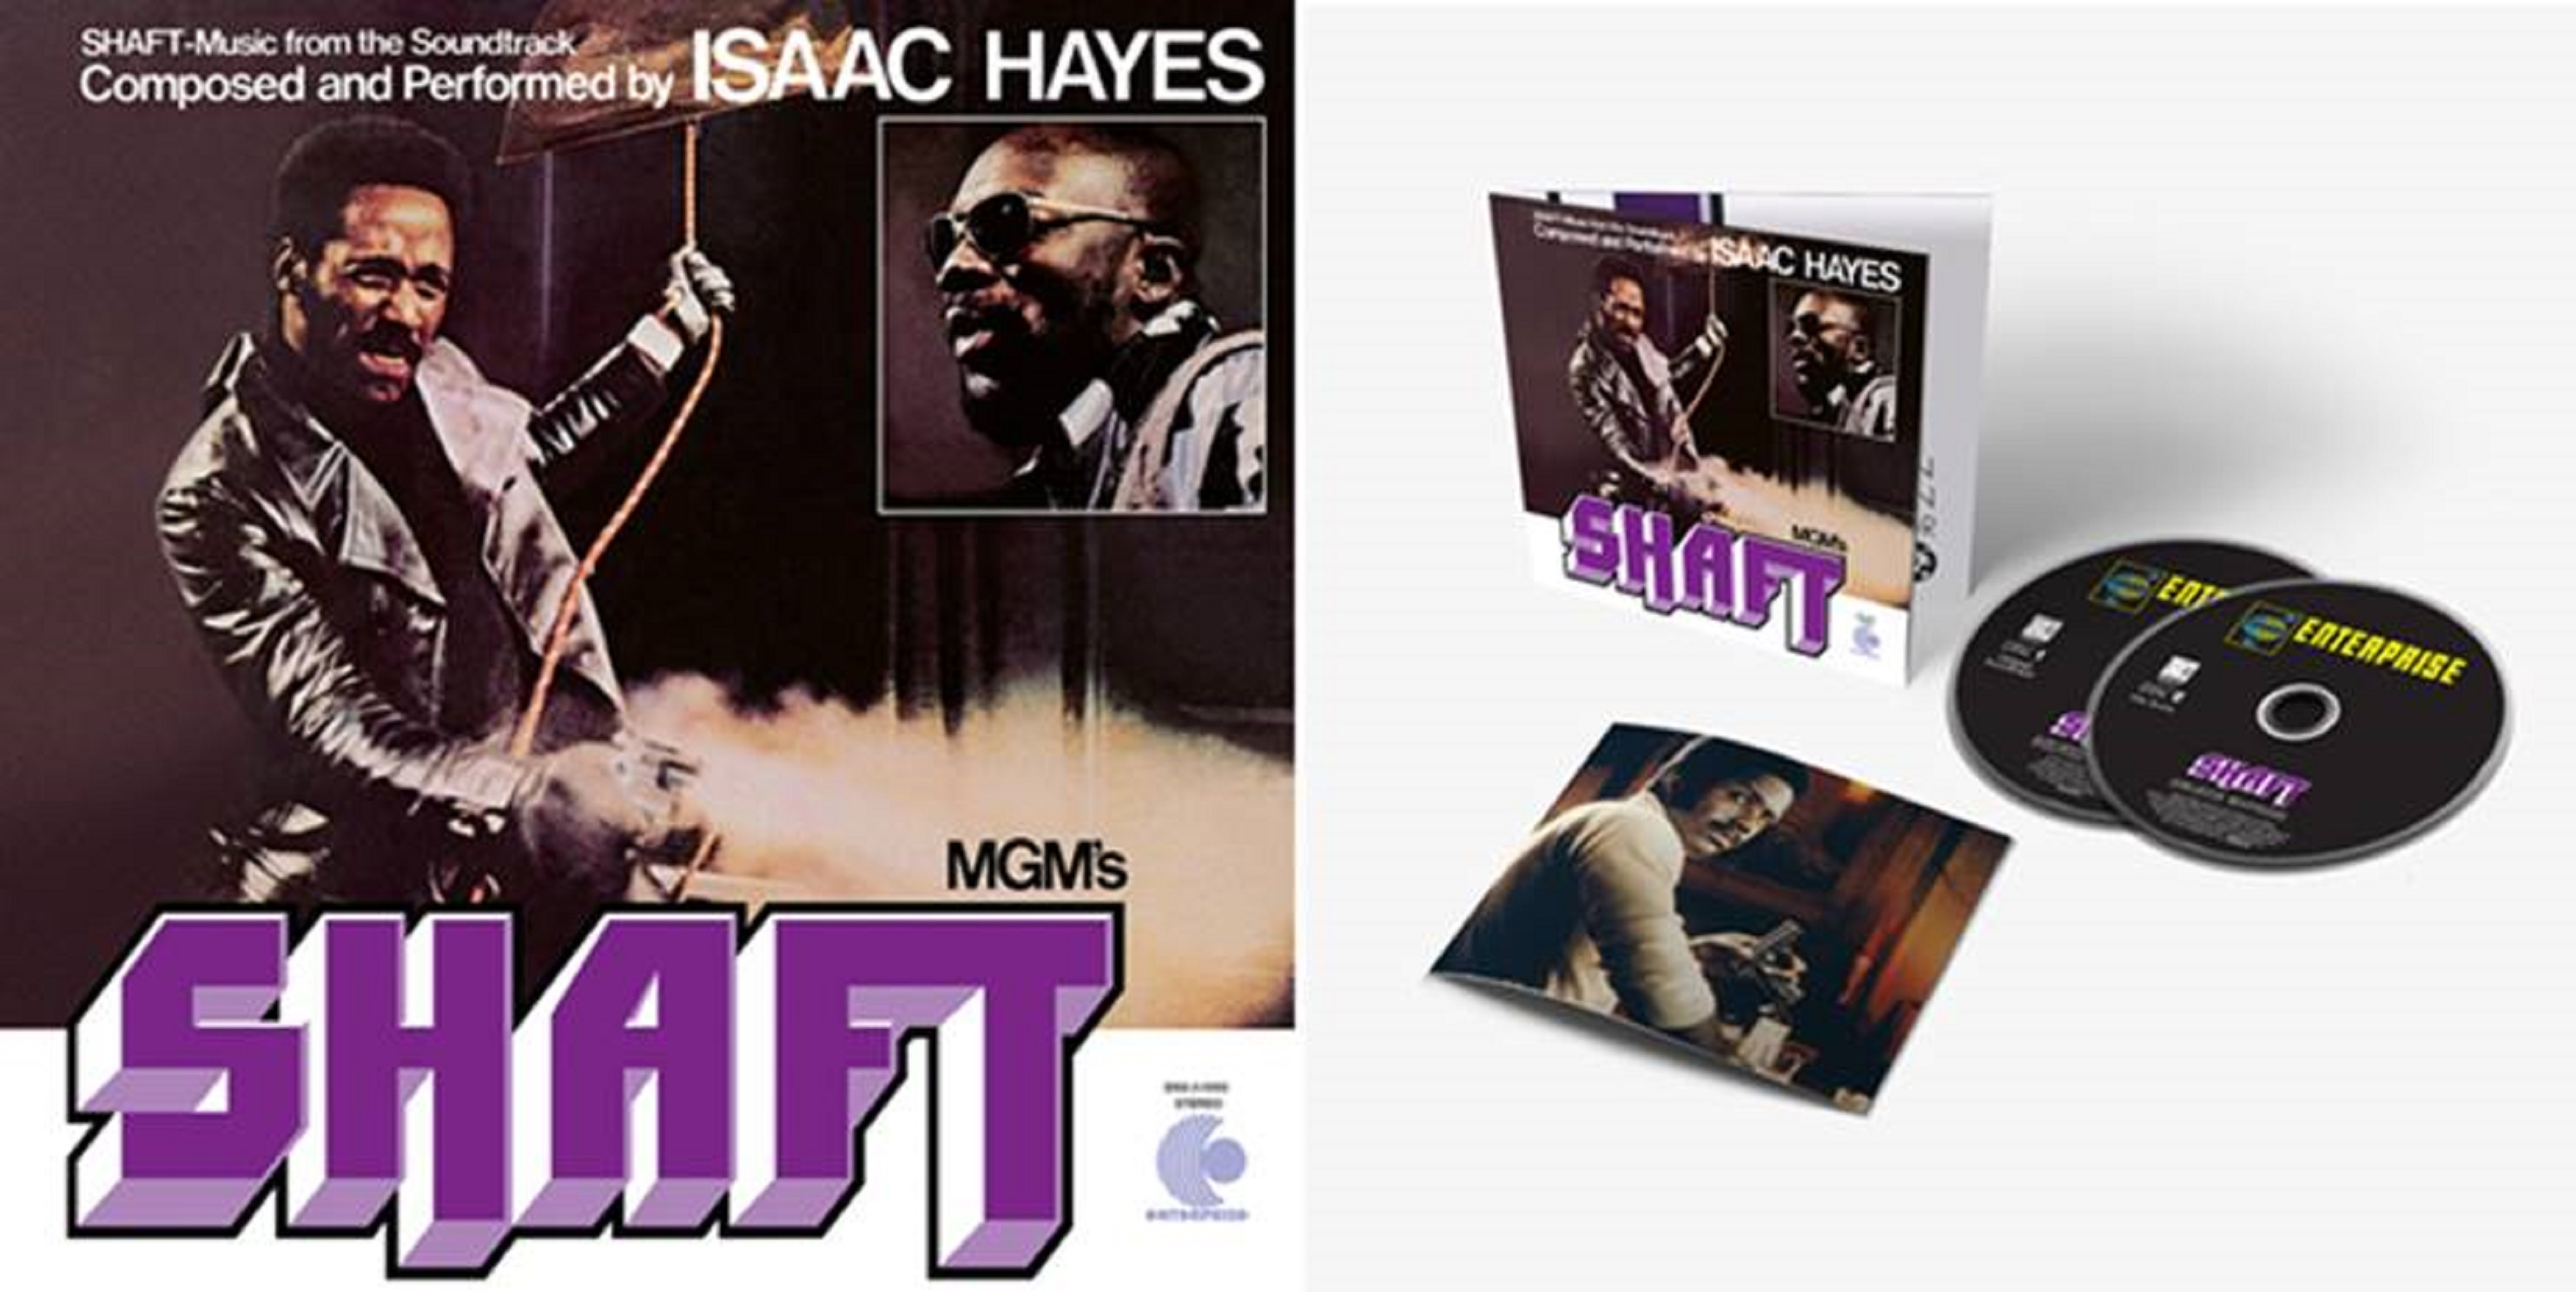 SHAFT — MUSIC FROM THE SOUNDTRACK SET FOR DELUXE REISSUE JUNE 14th